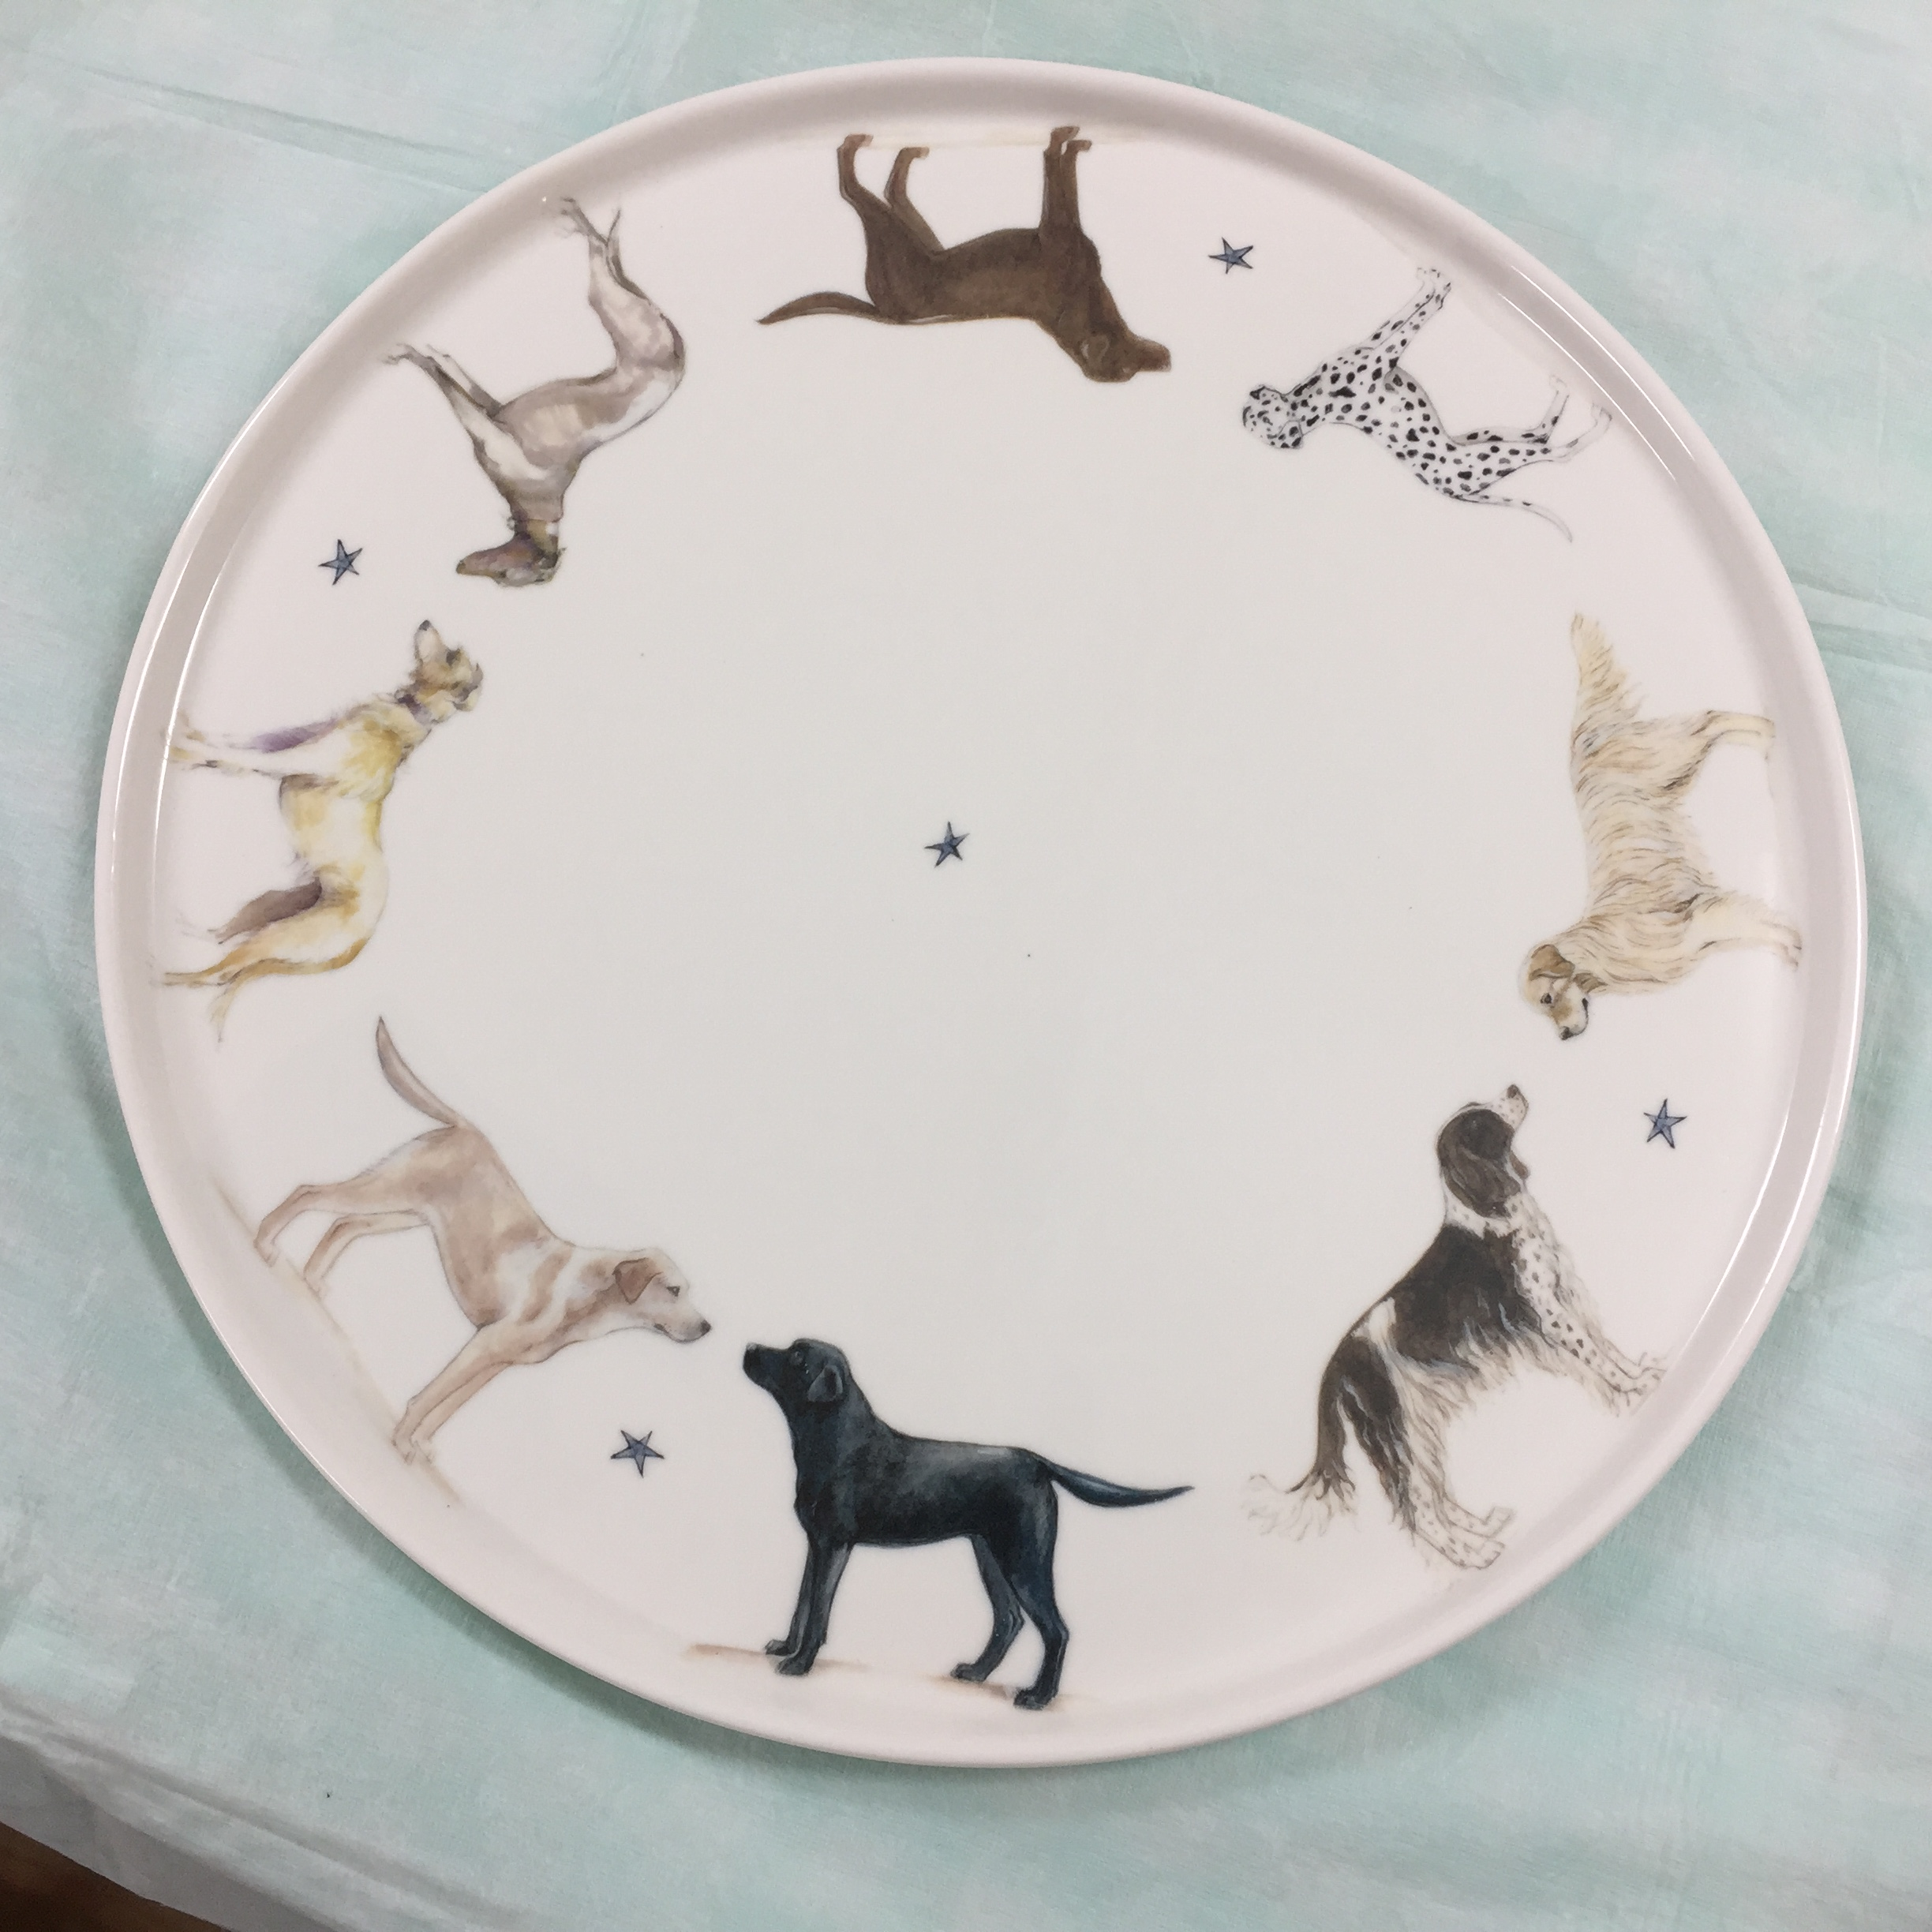 A Mixture of our breeds on a Large Cake Plate